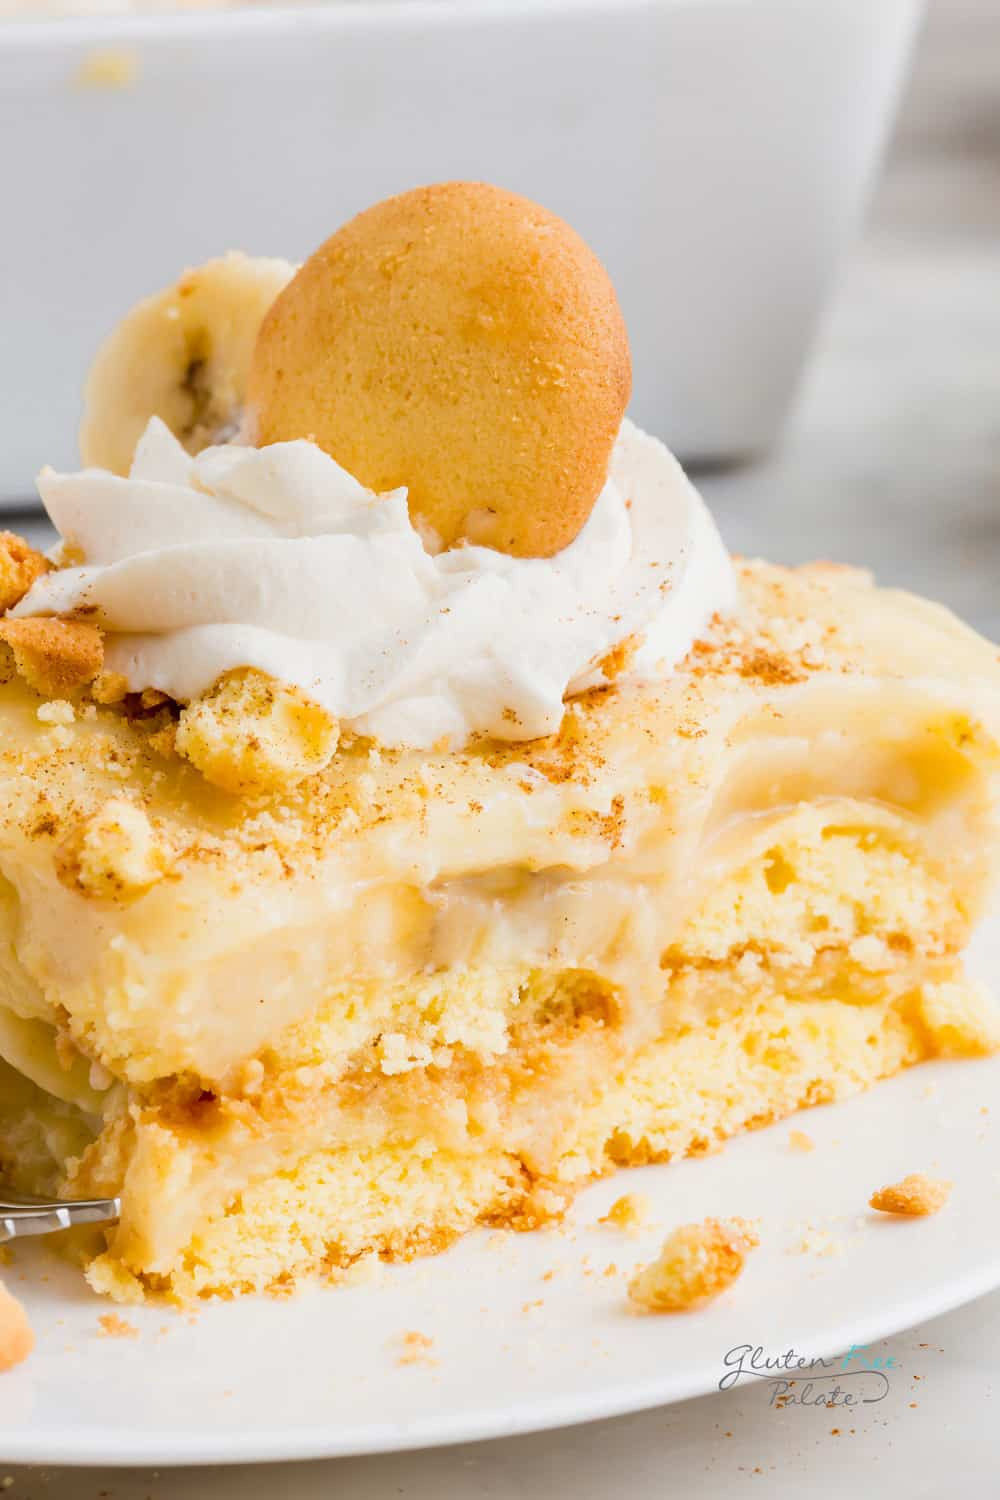 a close up of plated gluten free banana pudding